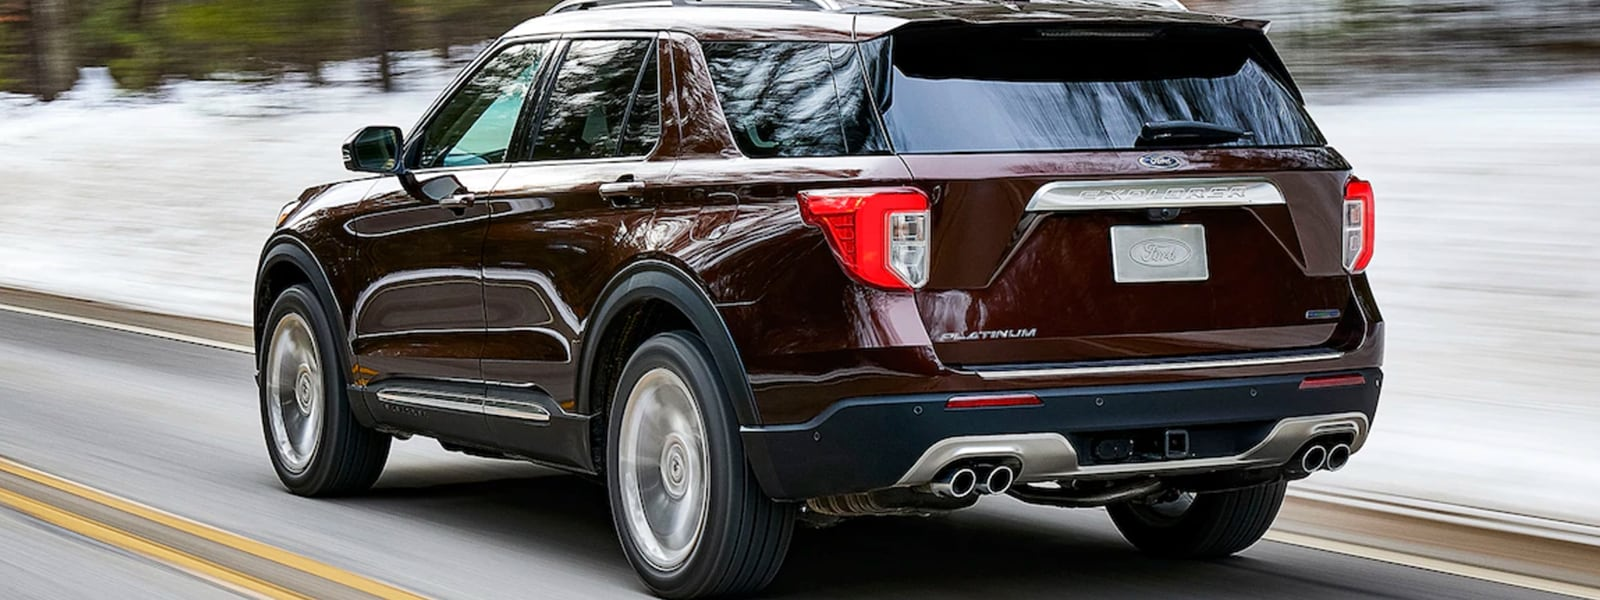 2020 Ford Explorer Is Soon To Debut Apple Ford Lincoln